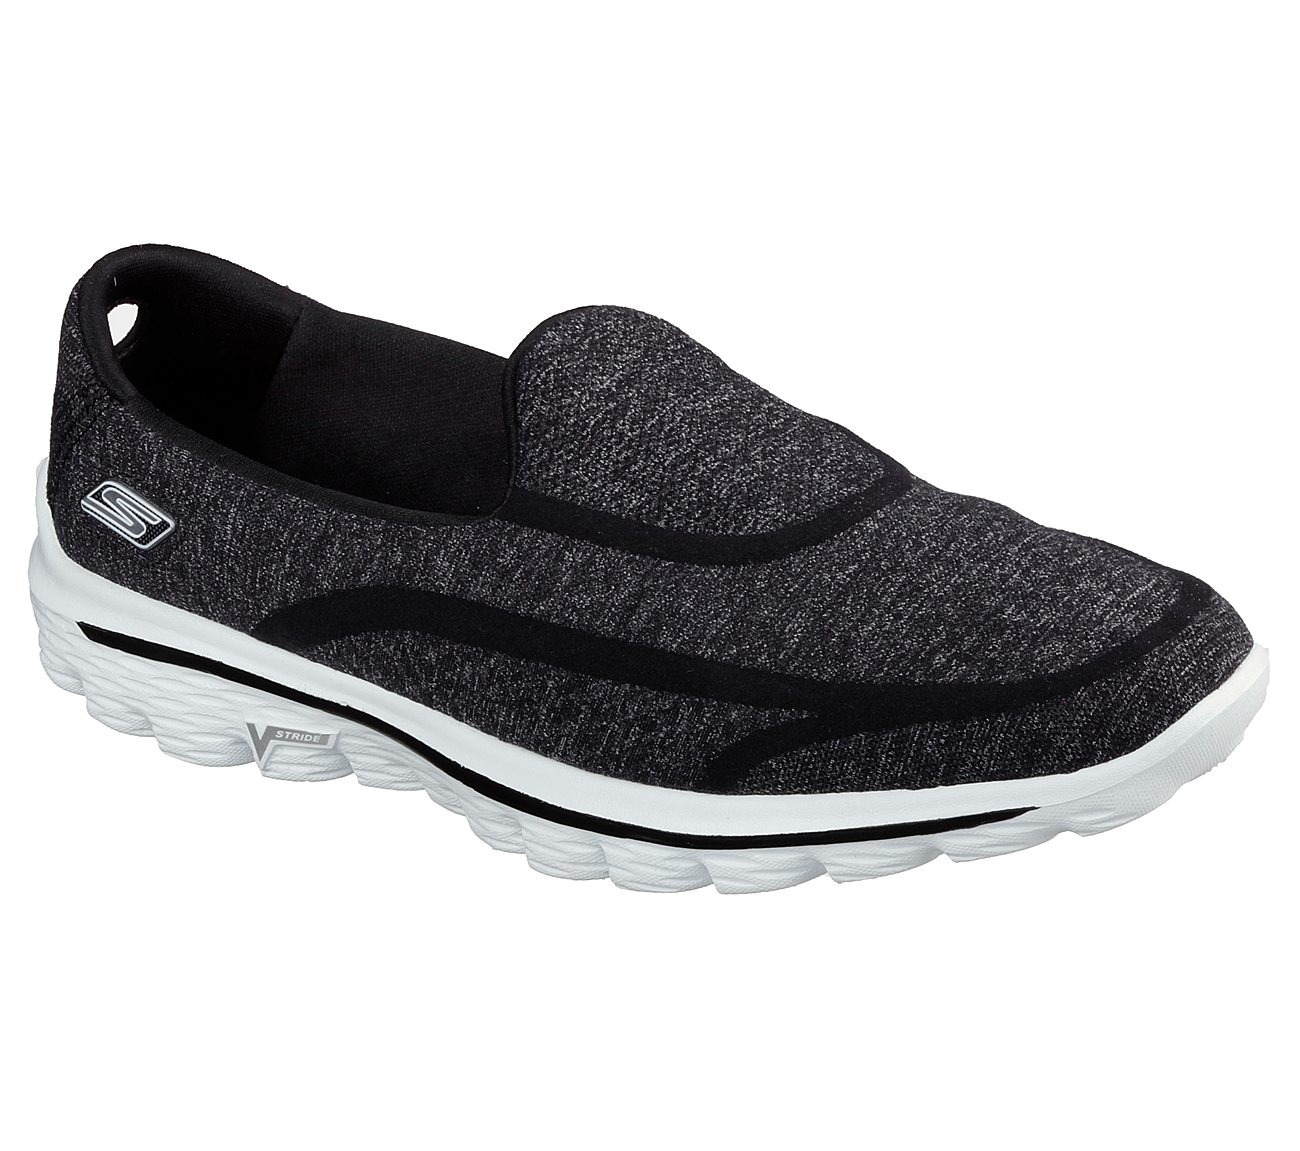 Super Sock Skechers Performance Shoes